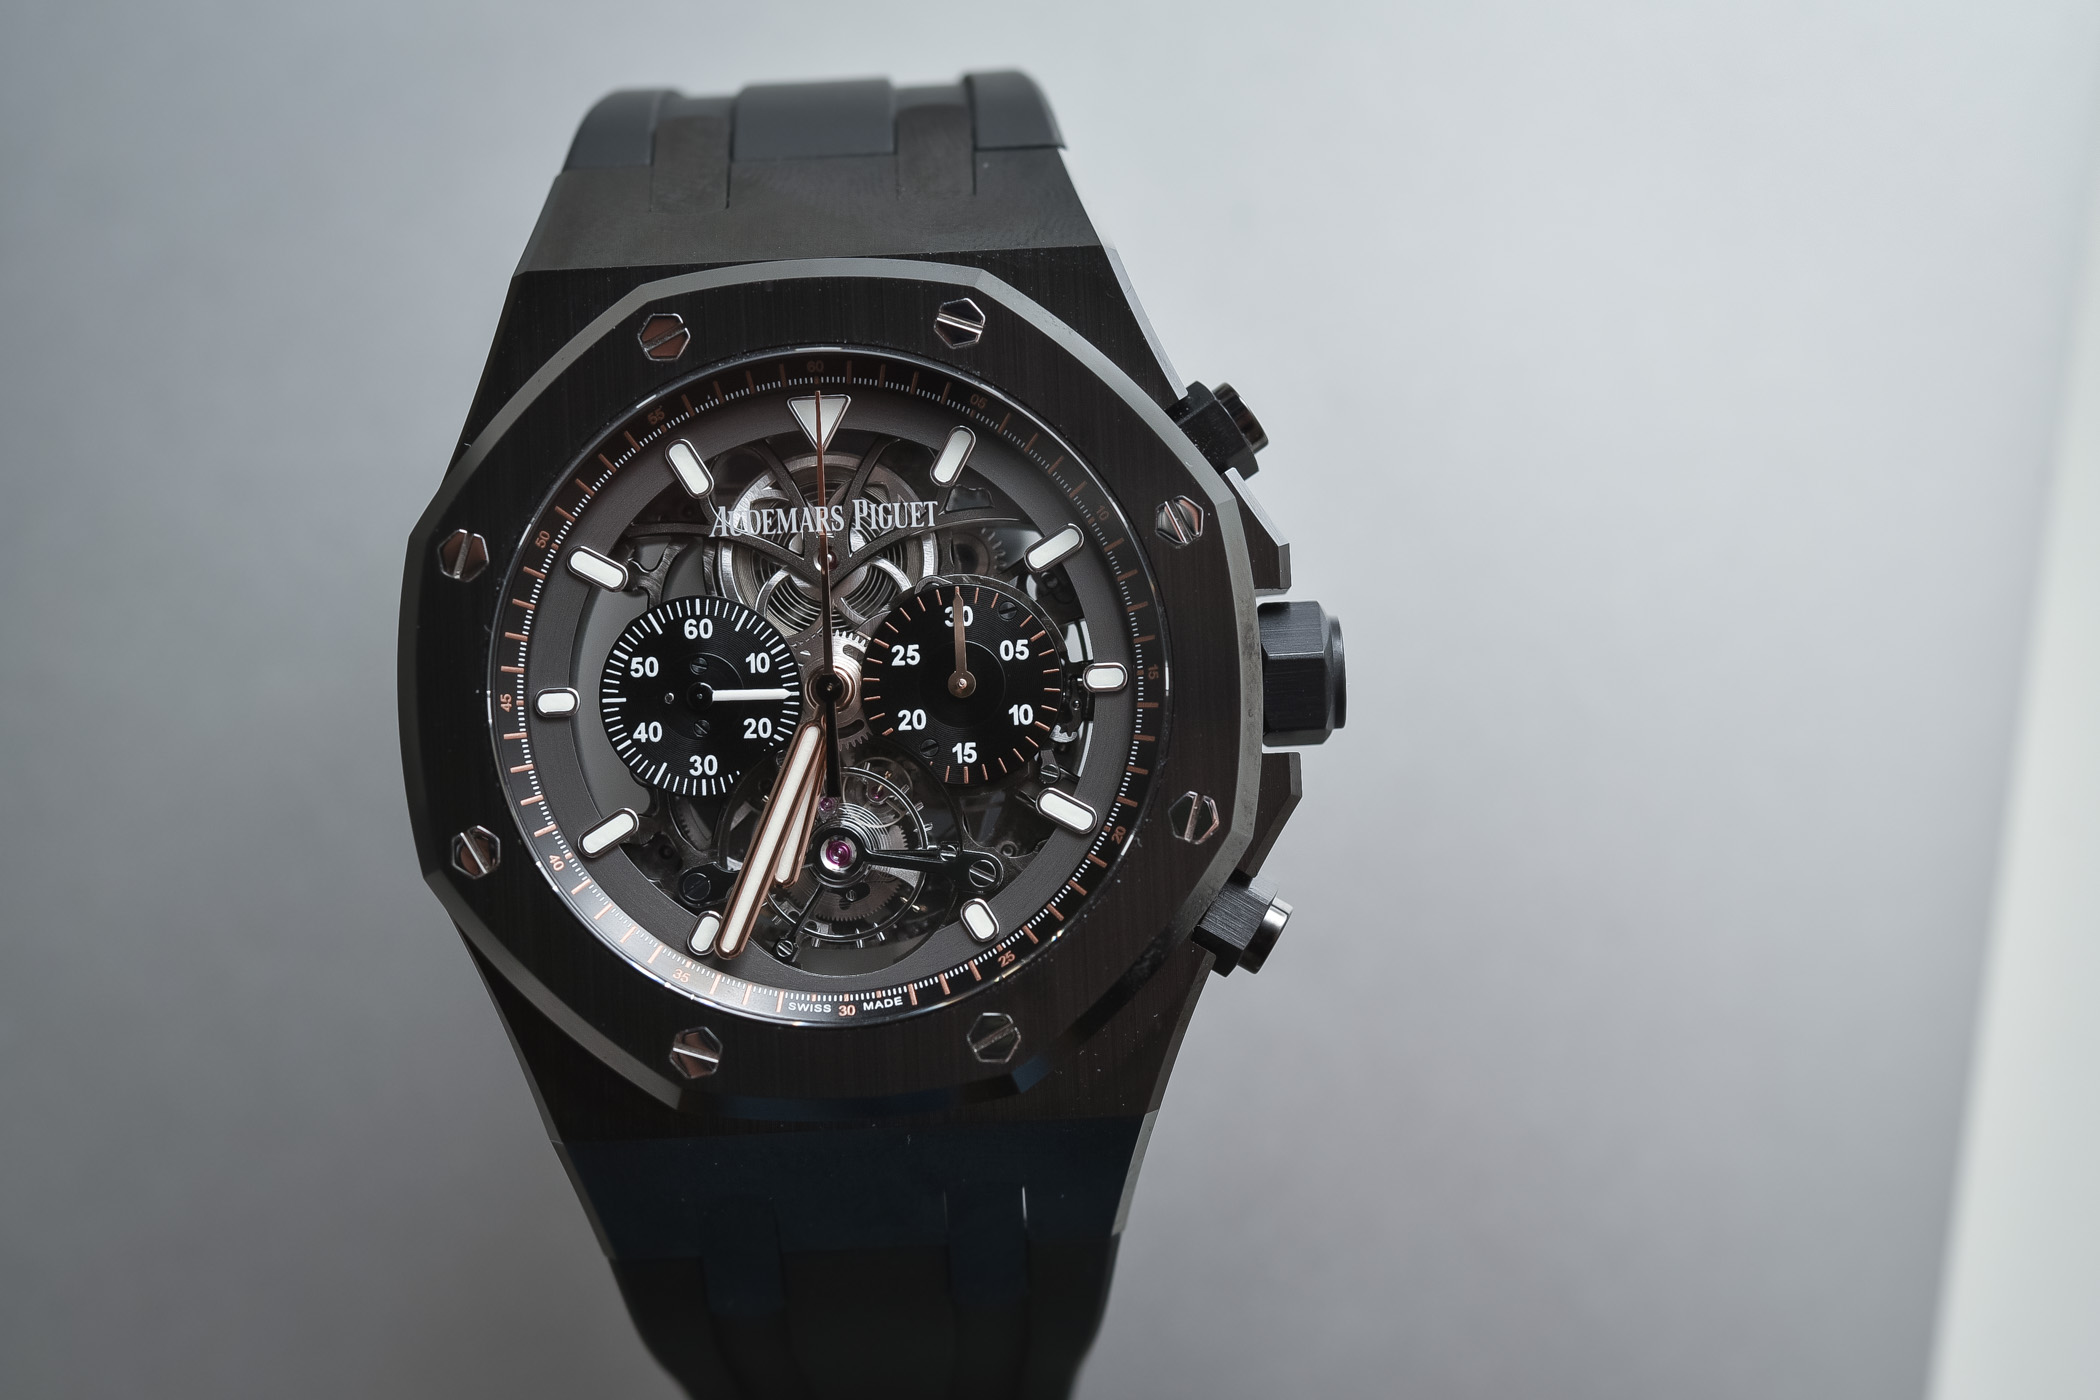 Audemars Piguet Royal Oak Tourbillon Chronograph Openworked Black Ceramic ref. 26343CE